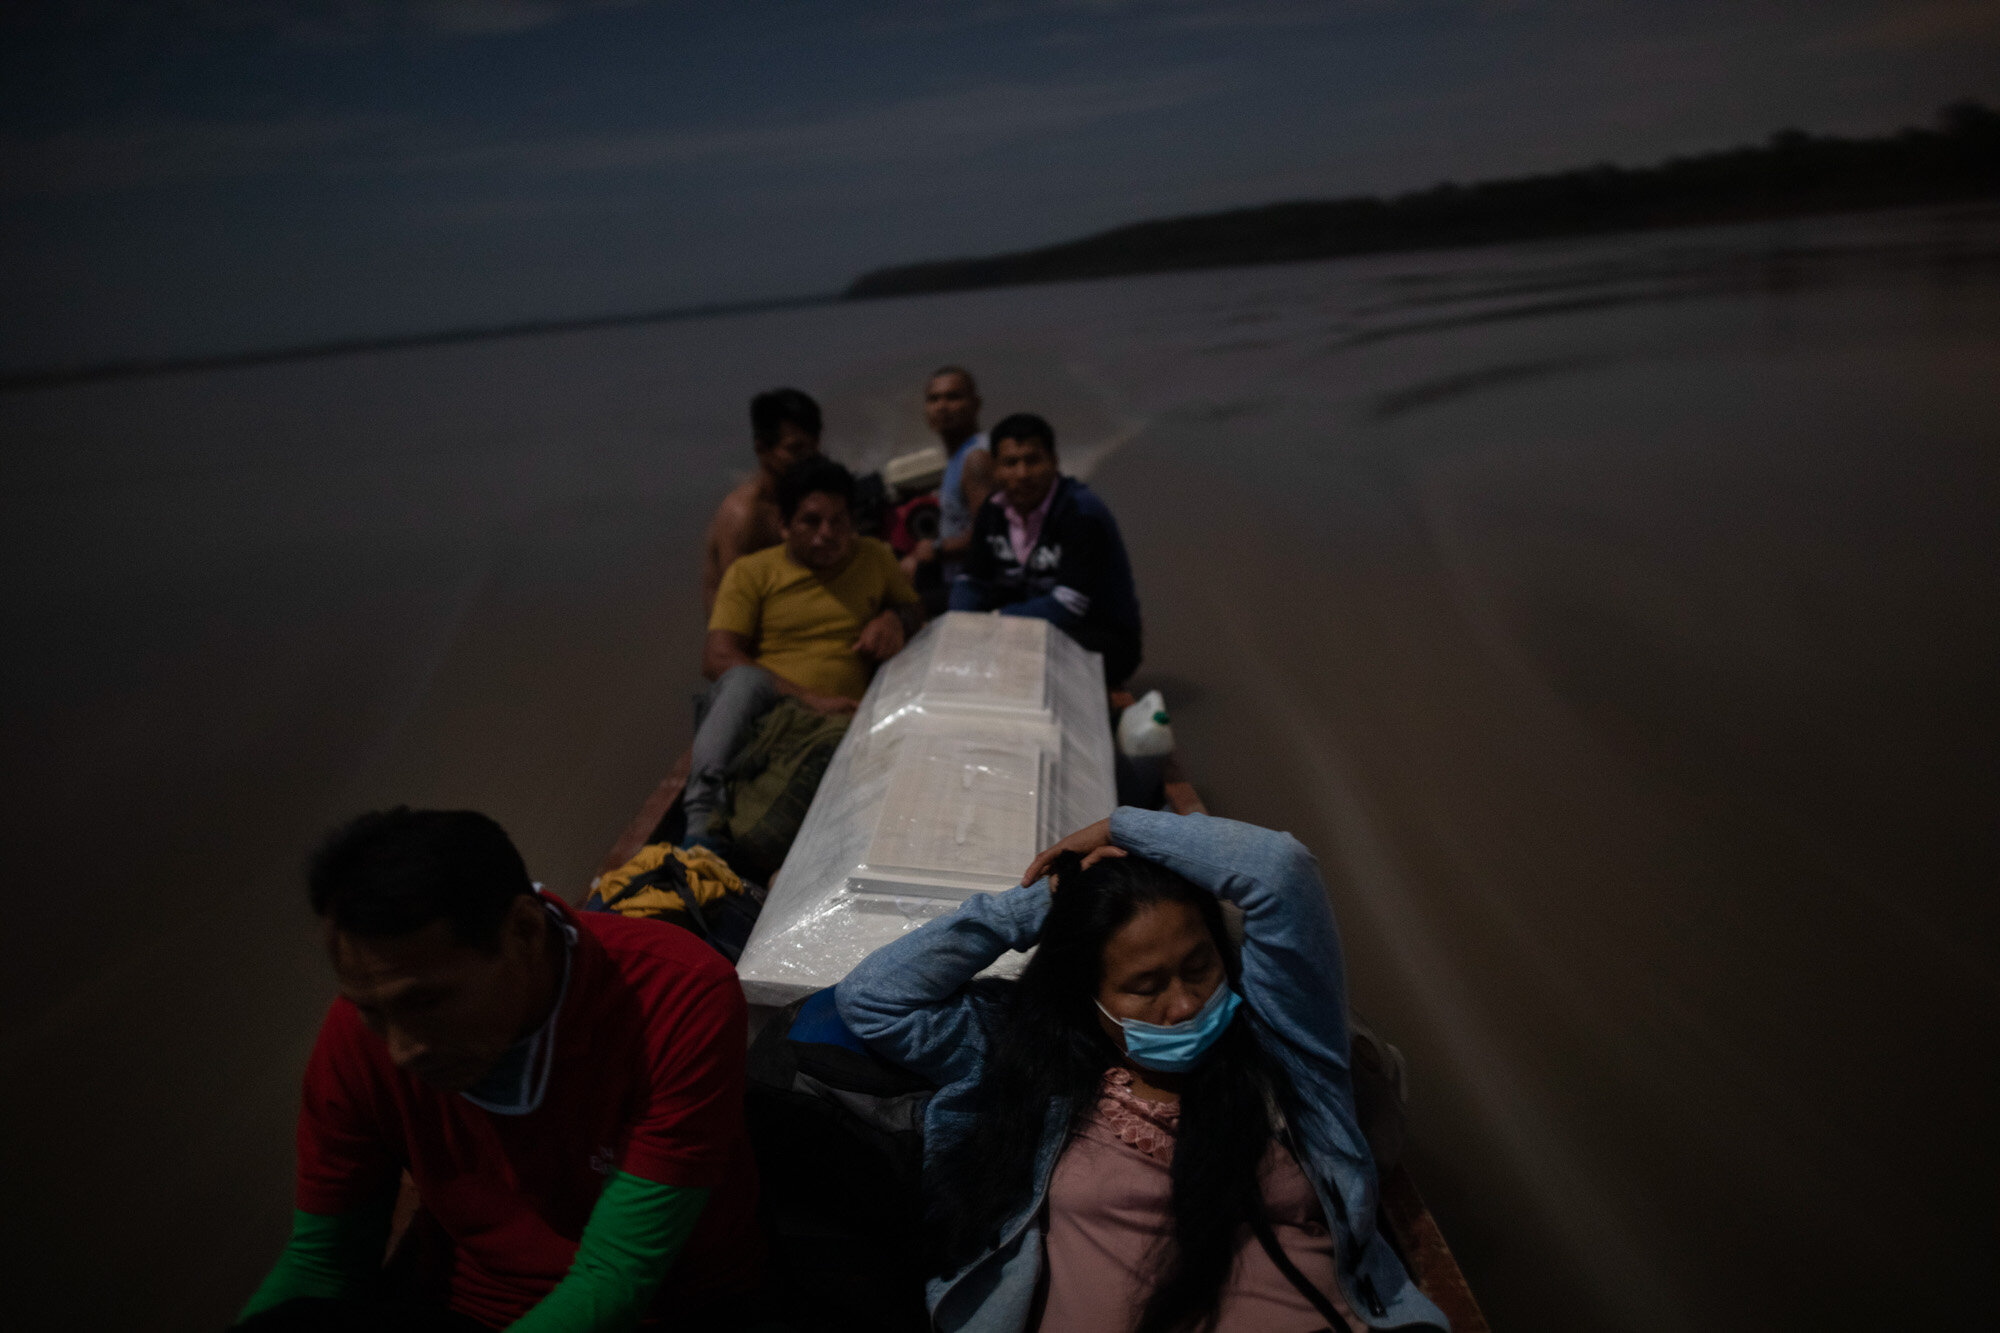 Relatives accompany the coffin that contains the remains of Jose Barbaran, who is believed to have died from complications related to the coronavirus, as they travel by boat on Peru's Ucayali River on Sept. 29, 2020. Despite the risk, family members decided to travel by night to Barbaran's hometown of Palestina, a four-hour journey. (AP Photo/Rodrigo Abd)